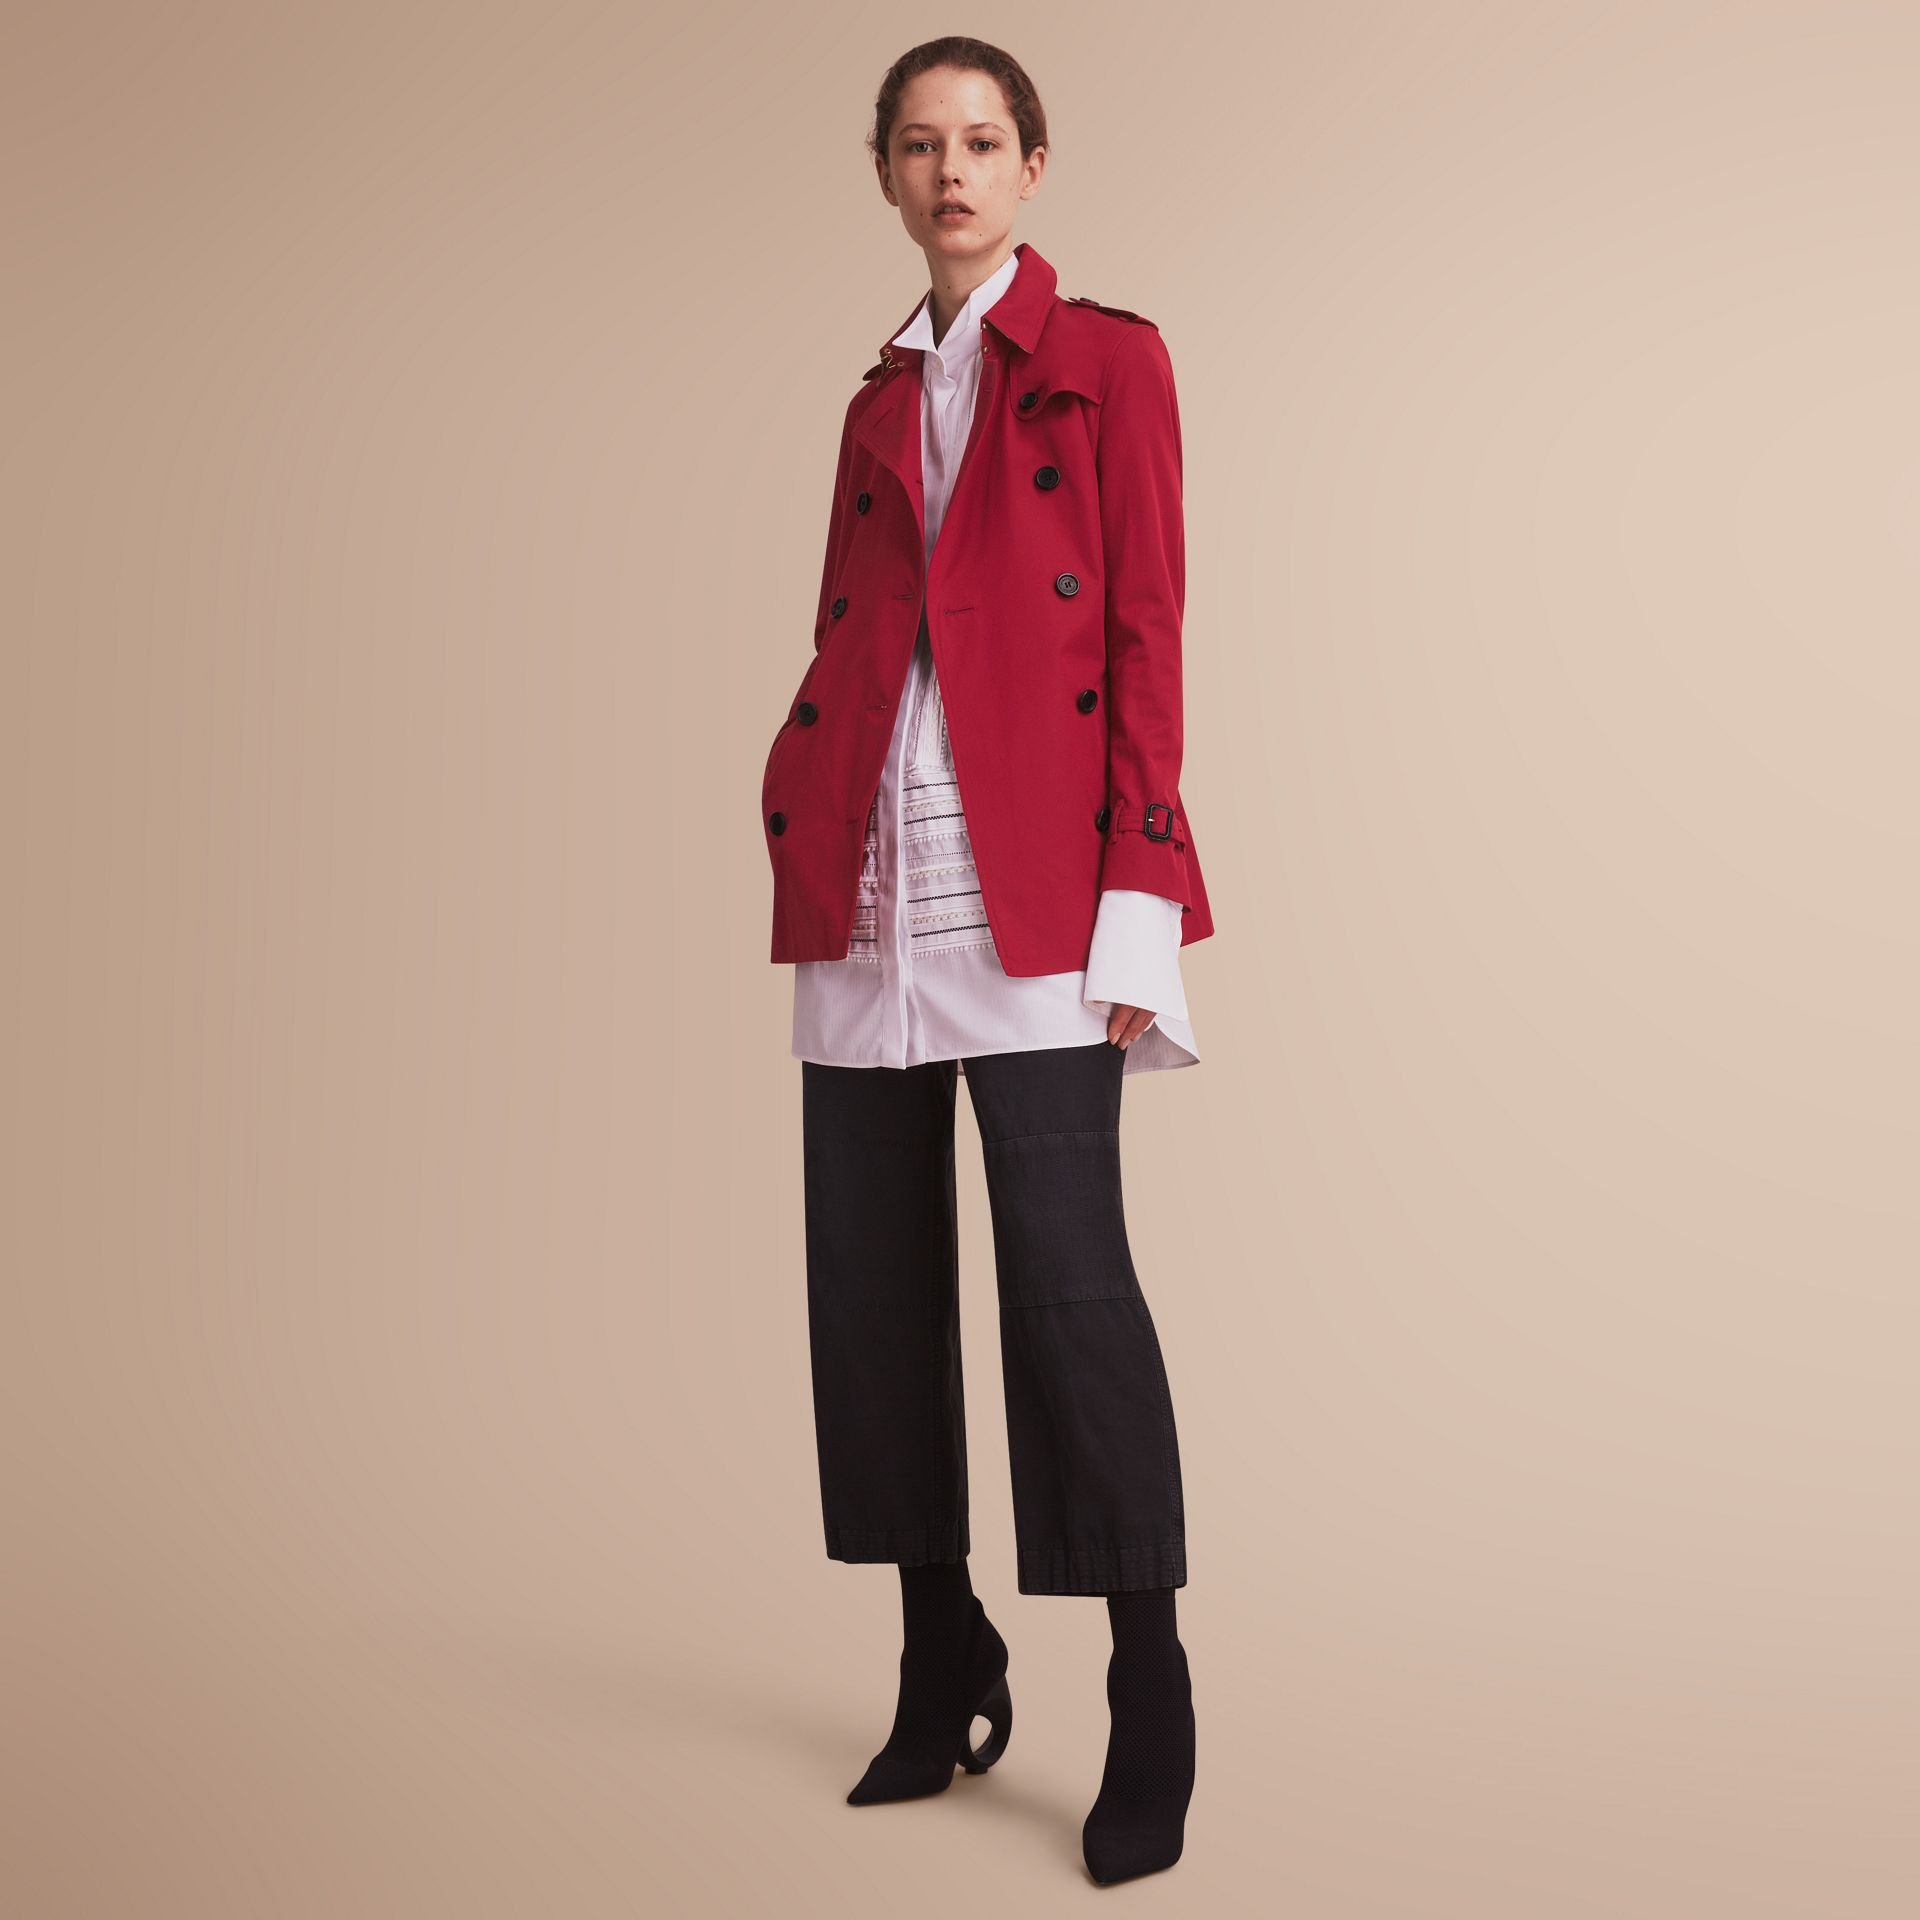 The Kensington – Short Heritage Trench Coat in Parade Red - Women | Burberry - gallery image 7